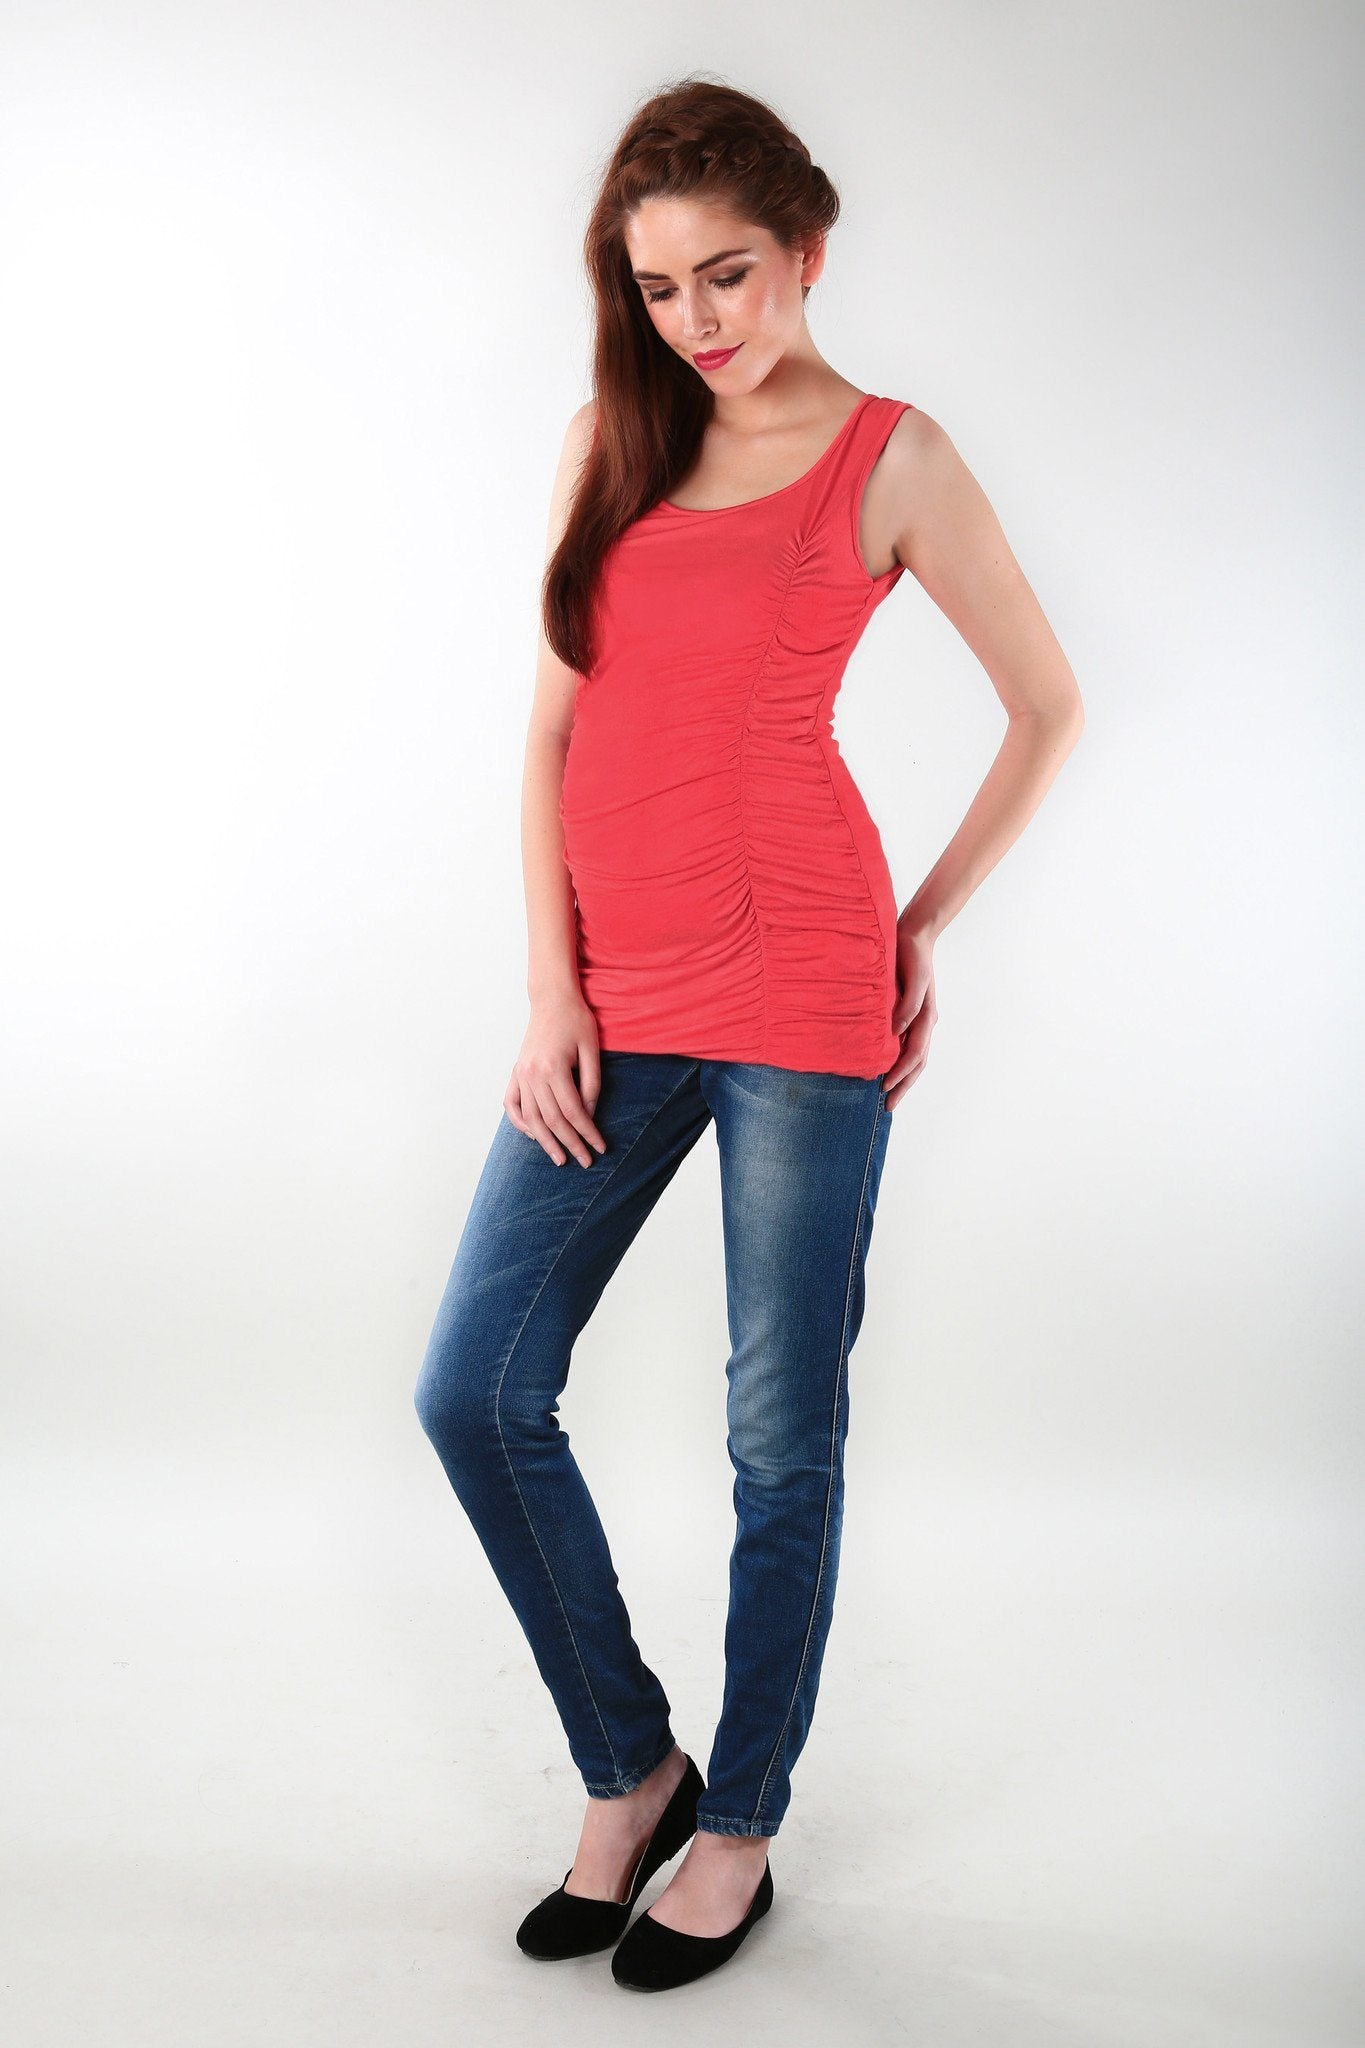 Gathered Coral Maternity Tank Top - MOMZJOY.COM - 2